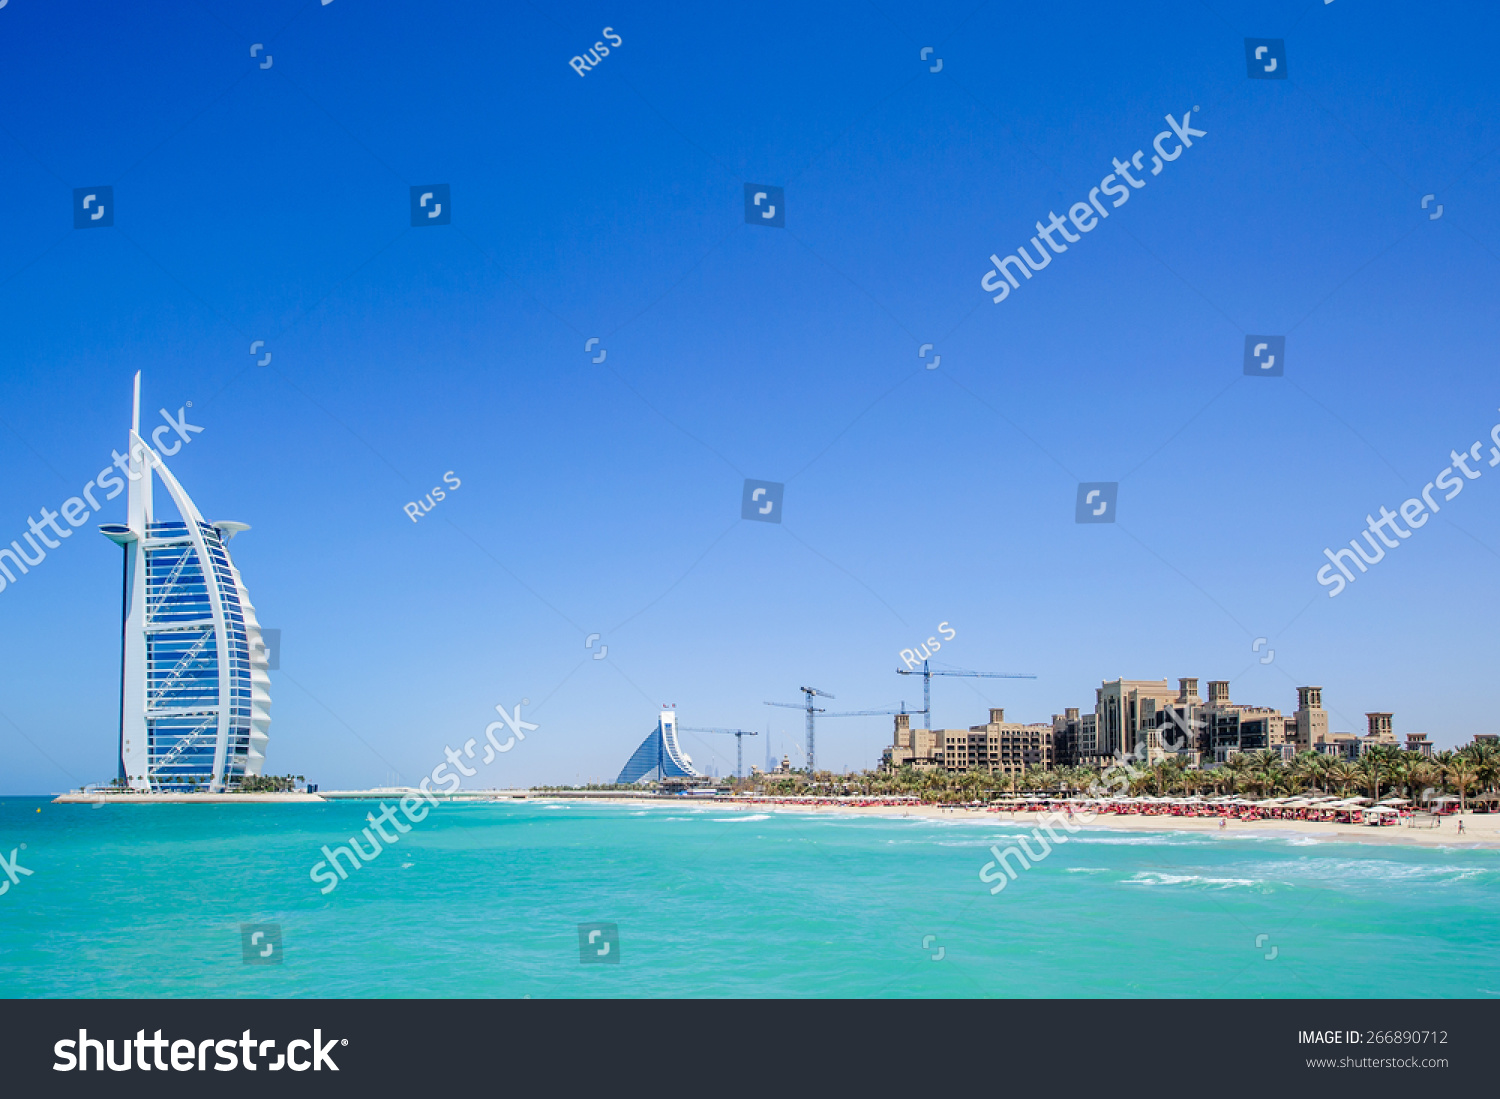 Dubai uae april 05 grand sail stock photo 266890712 for The sail hotel dubai